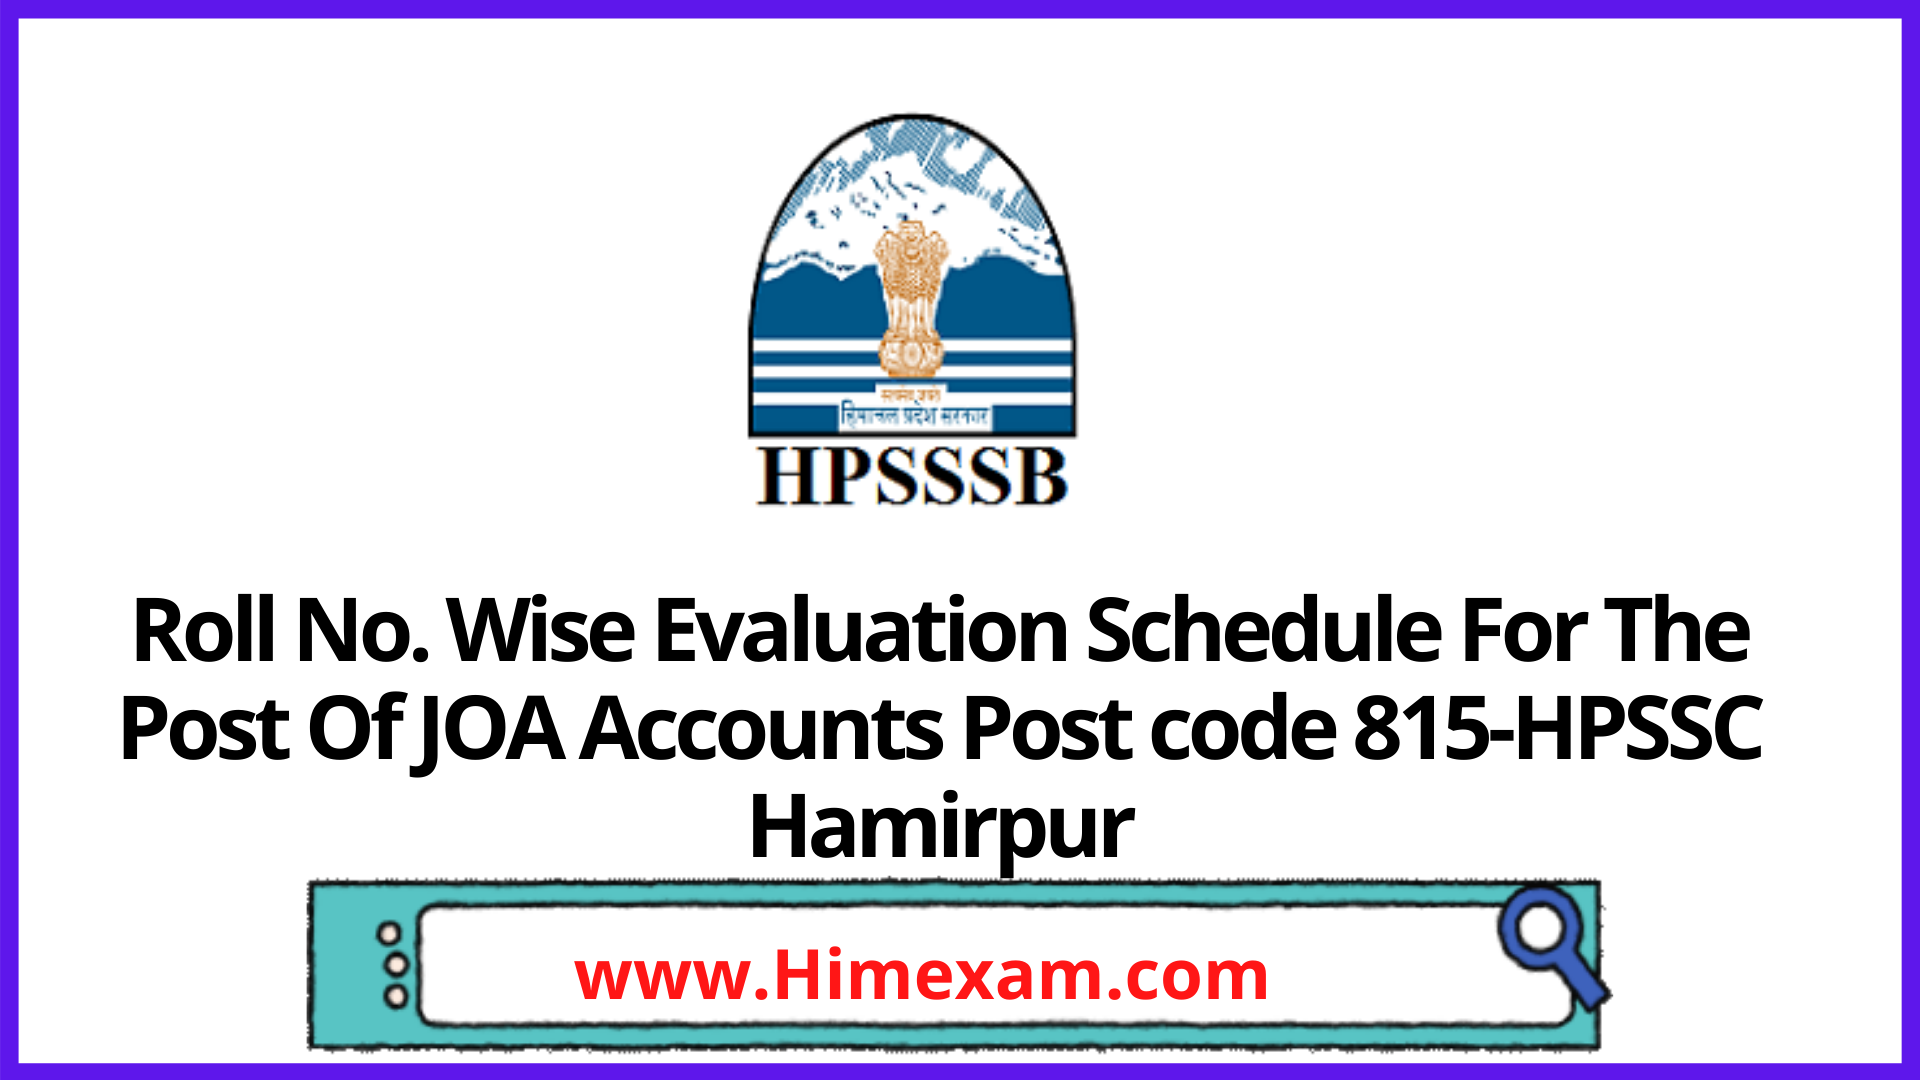 Roll No. Wise Evaluation Schedule For The Post Of JOA Accounts Post code 815-HPSSC Hamirpur